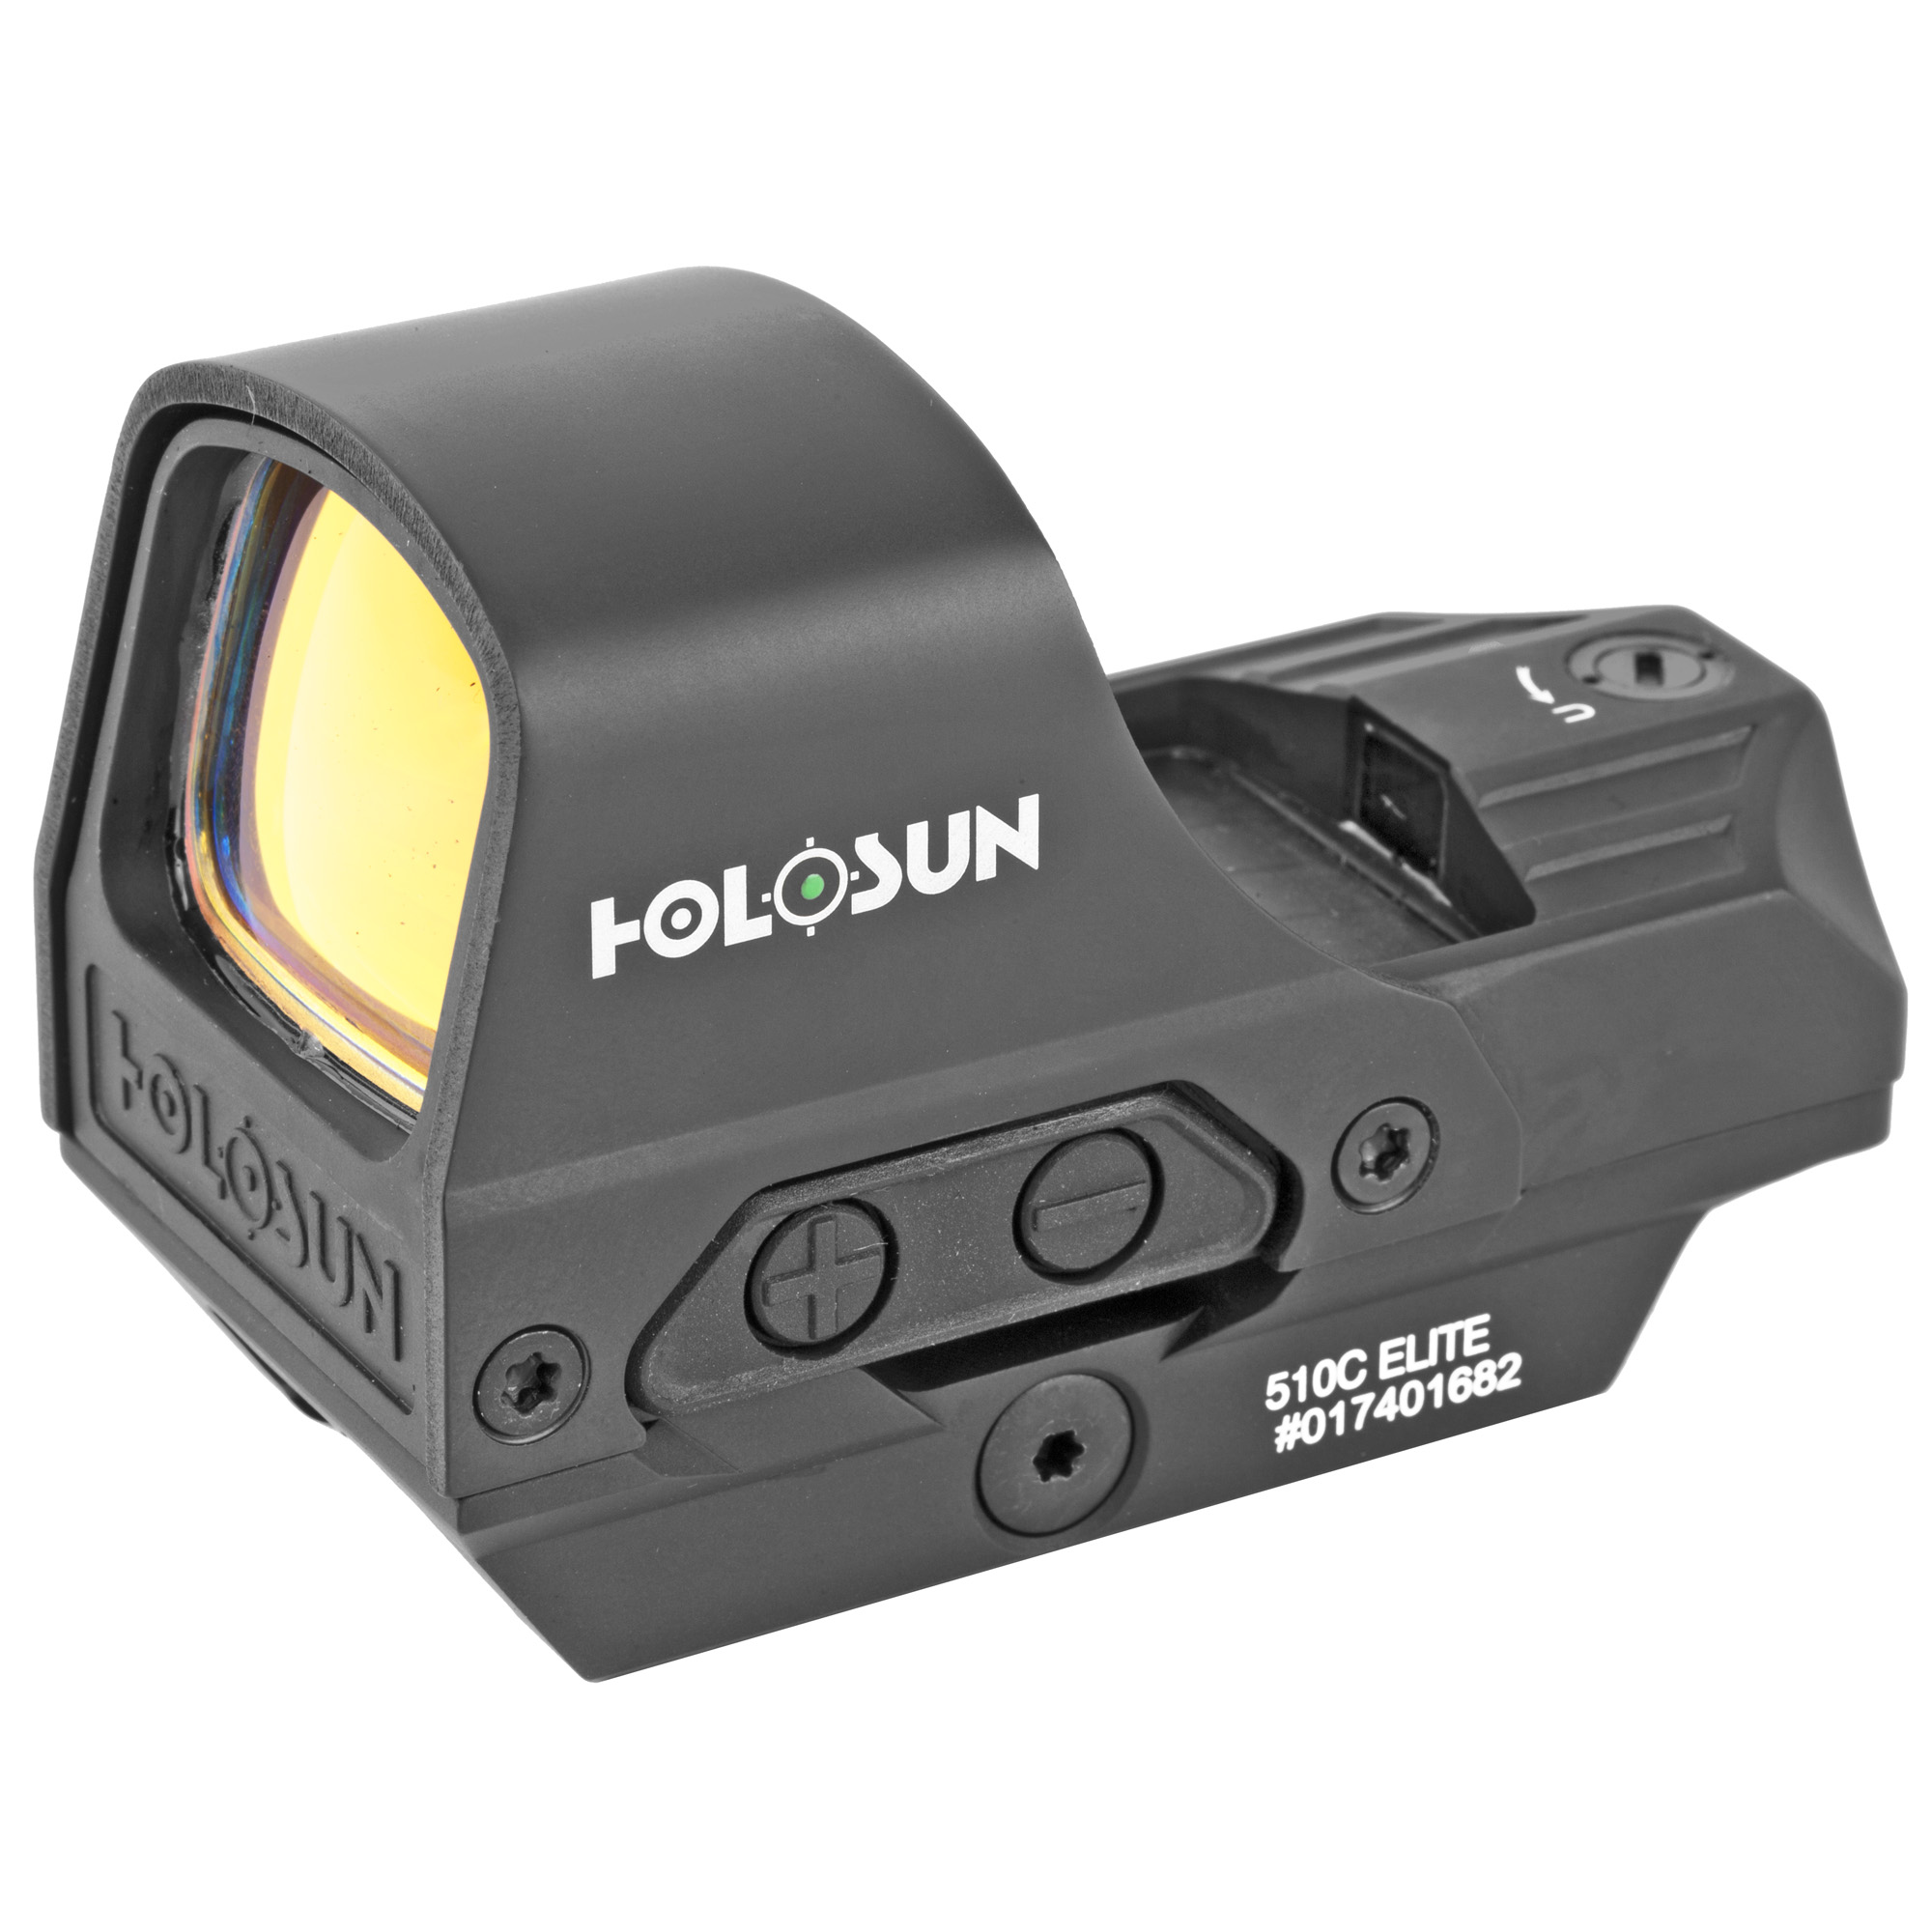 """The HE510C-GR Elite is Holosun's flagship Open Reflex optic. Now equipped with Holosun's highly efficient green reticle"""" the HE510C-GR Elite has an open frame for a wide sight picture. The HS510C Elite is powered by our new"""" """"Advanced Super Solar Technology"""" as well as"""" a CR2032 battery. Utilizing our multi-reticle system (MRS) this unit features three reticle choices. The HE510C-GR can be switched between a 65 MOA circle with 2 MOA dot"""" a 2 MOA dot only"""" or a 65 MOA ring only"""" all at the push of a button. This optic is protected by a titanium-alloyed hood."""